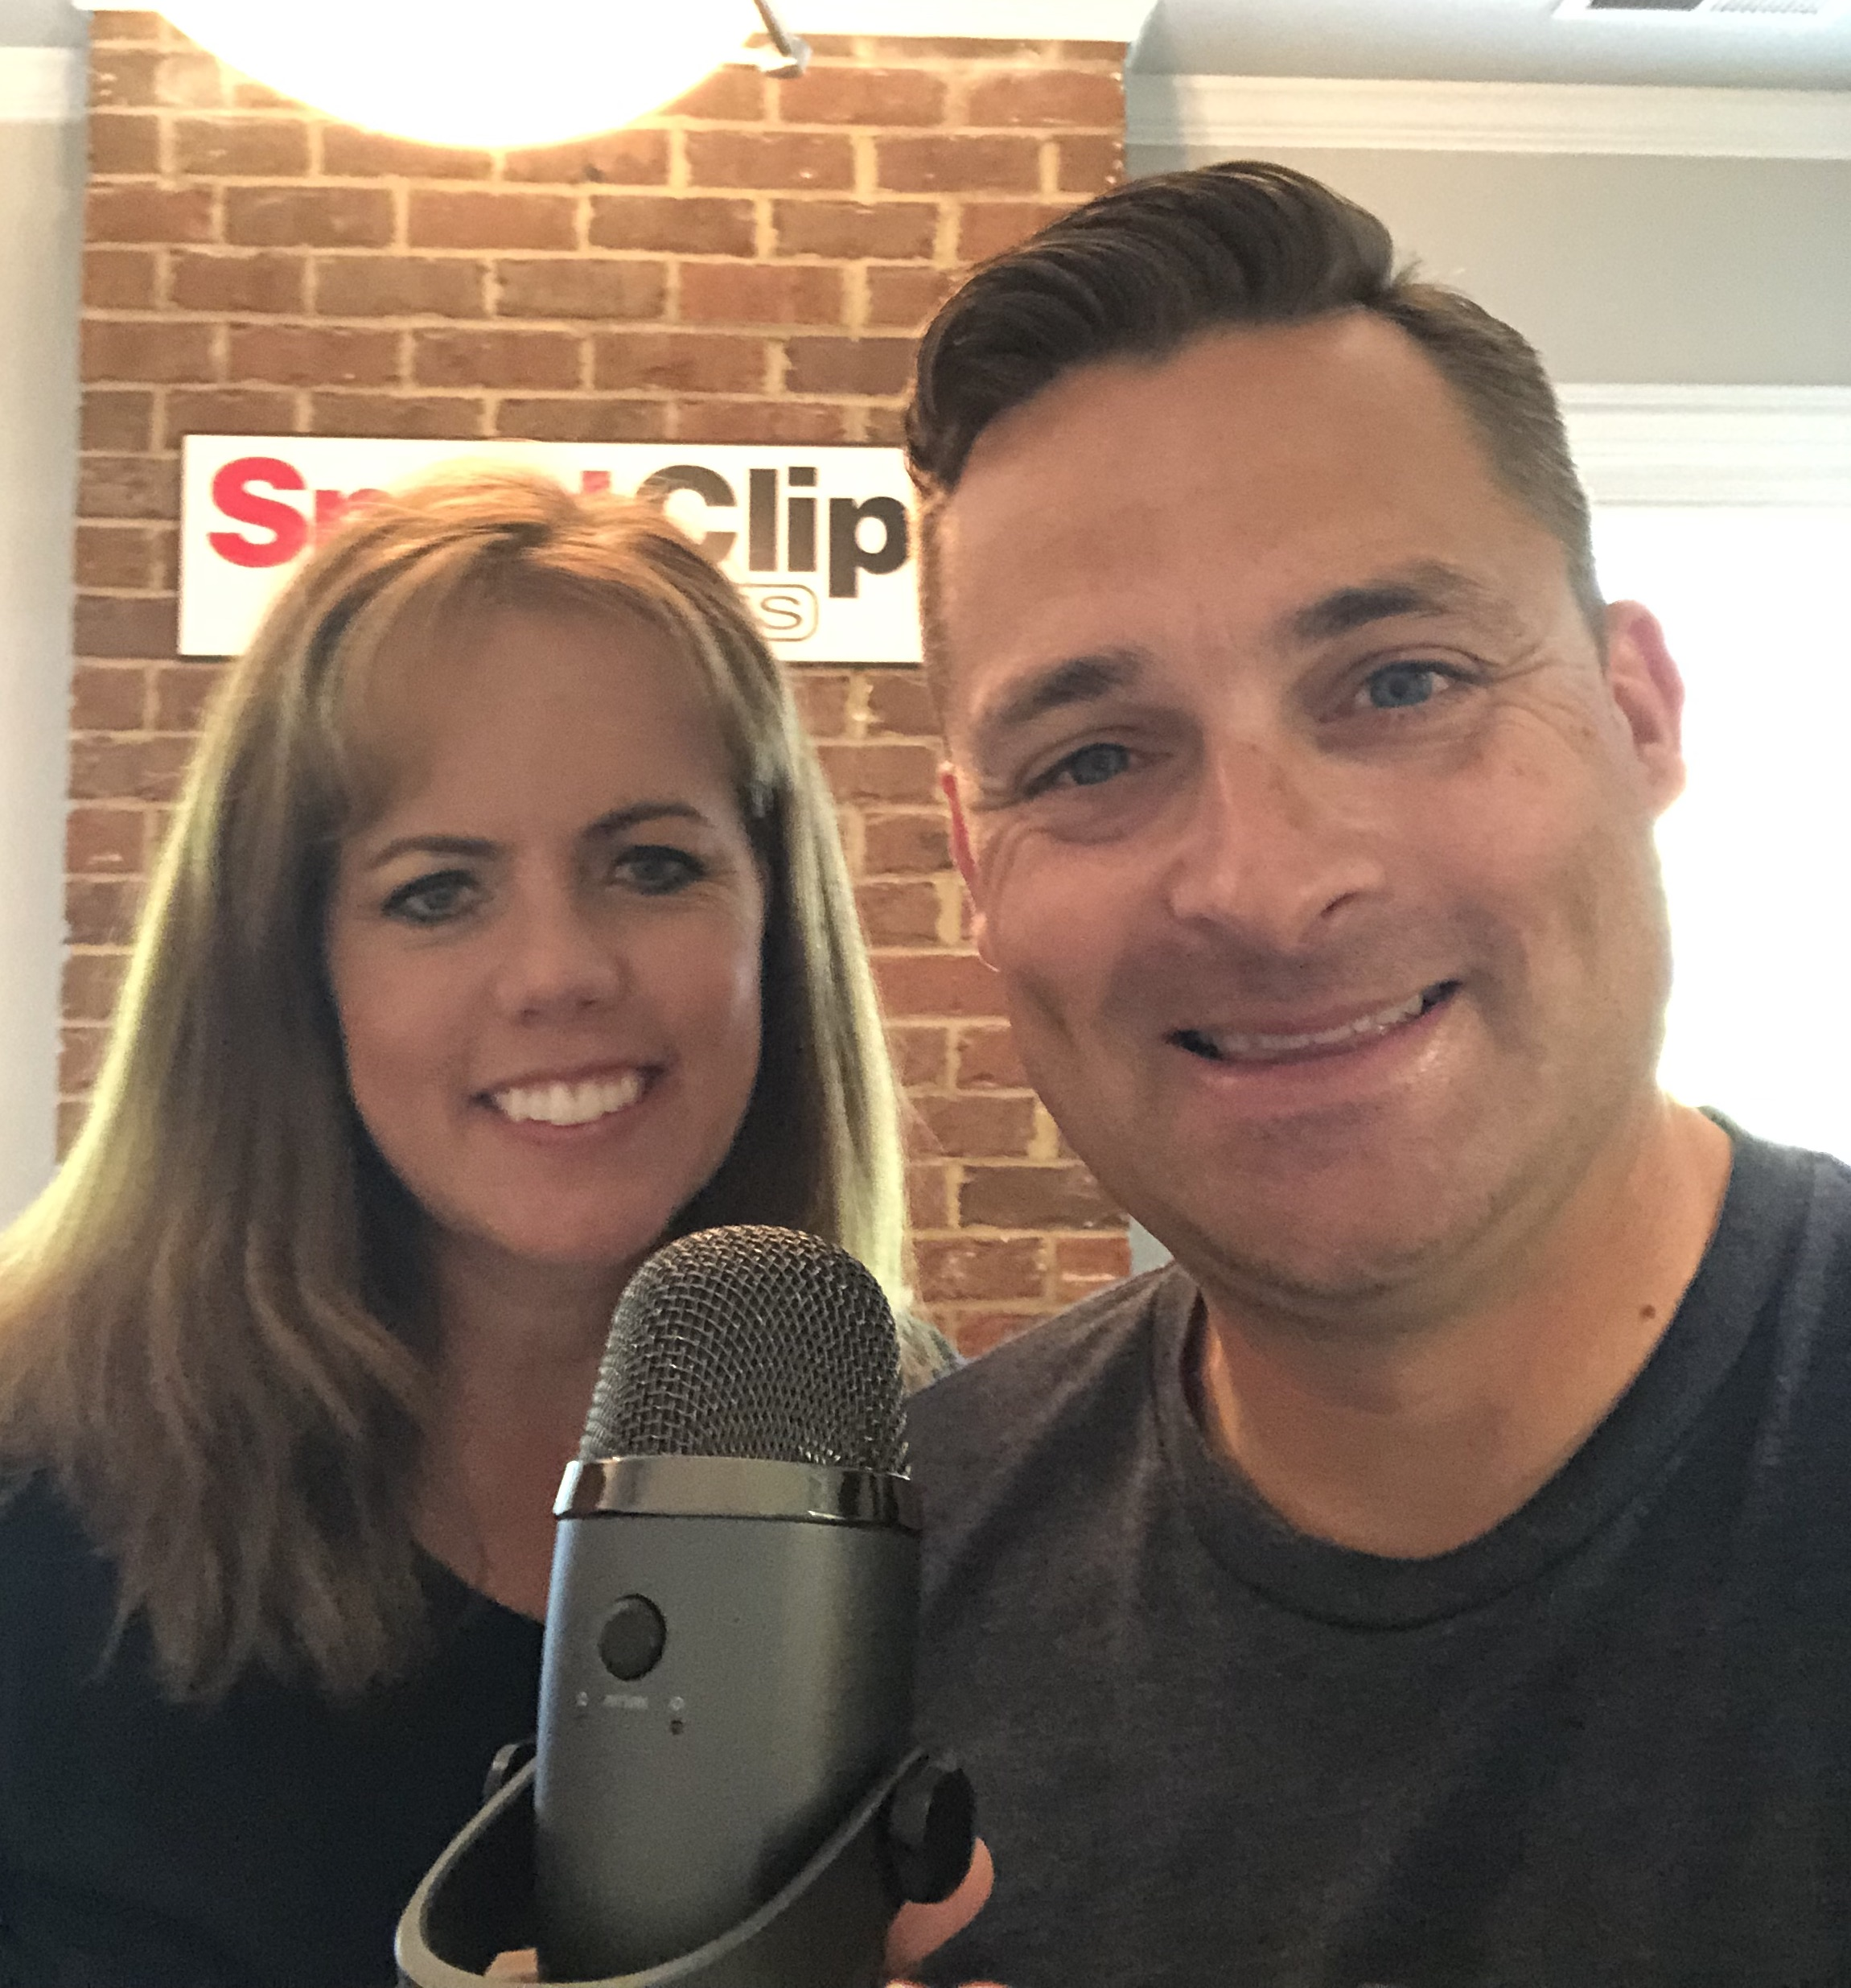 Chad Jordan and Debra Sawyer holding a microphone